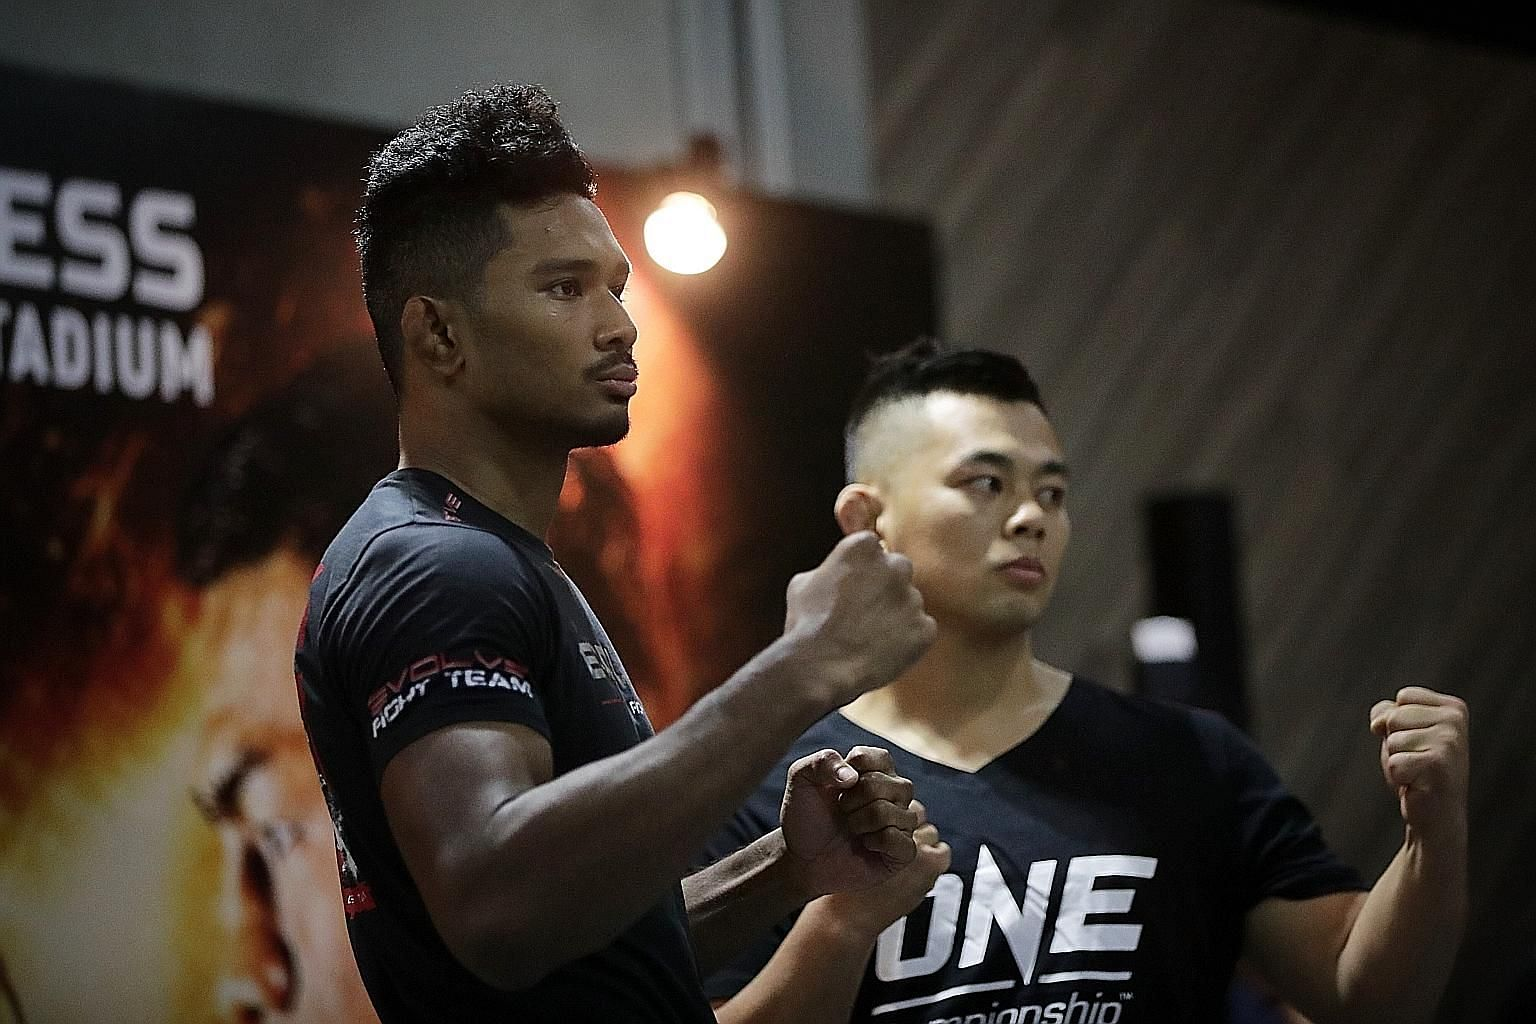 Singapore mixed martial arts fighter Amir Khan (left) was all business yesterday as he faced off with rival Ev Ting at the open workouts ahead of One Championship's Edge of Greatness event. The 25-year-old takes on Malaysian fighter Ting, 30, in the